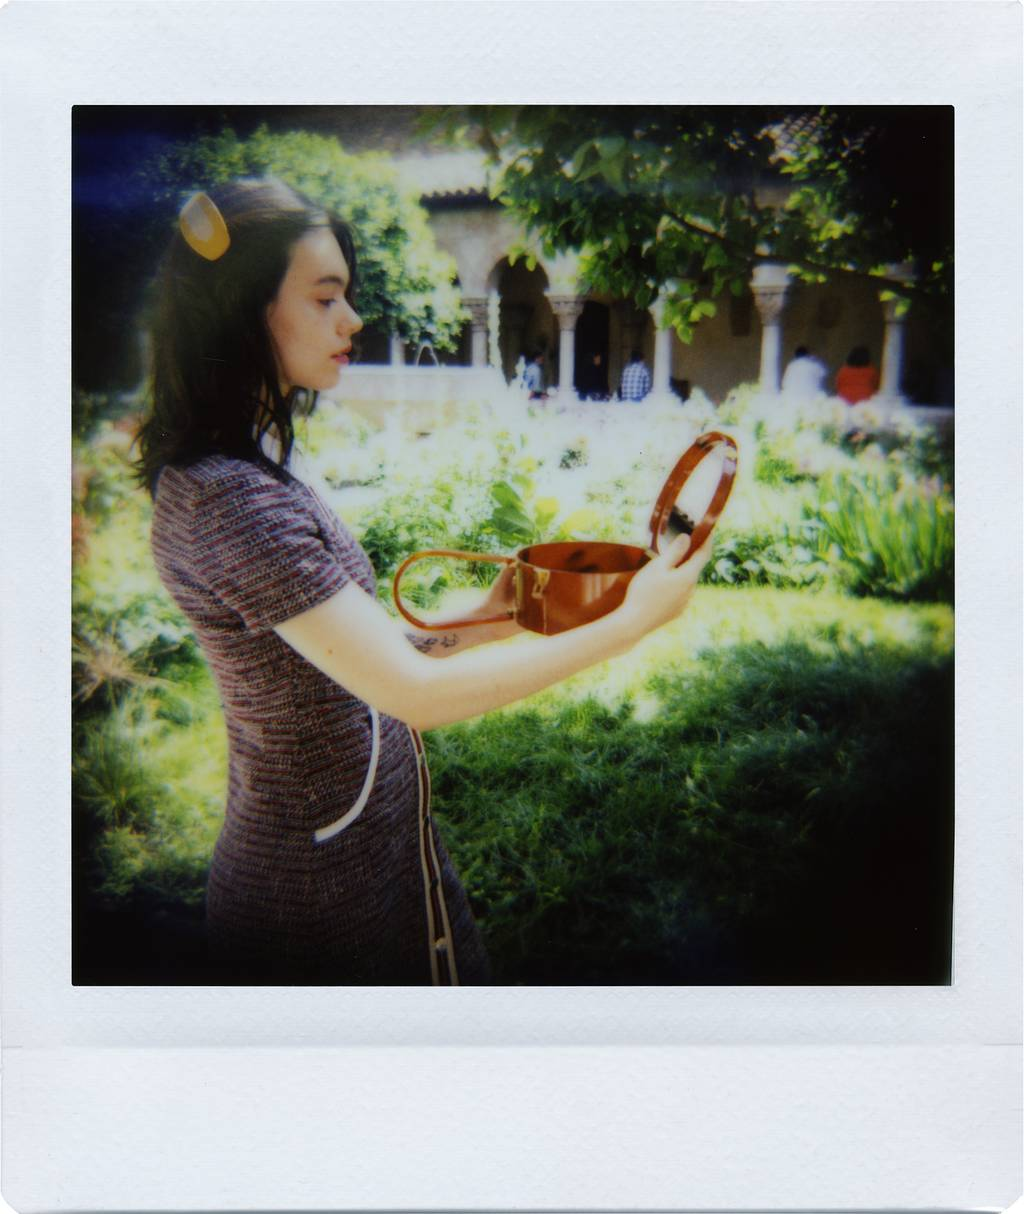 Mirella Cardoso: First Impressions of The Diana Instant Square